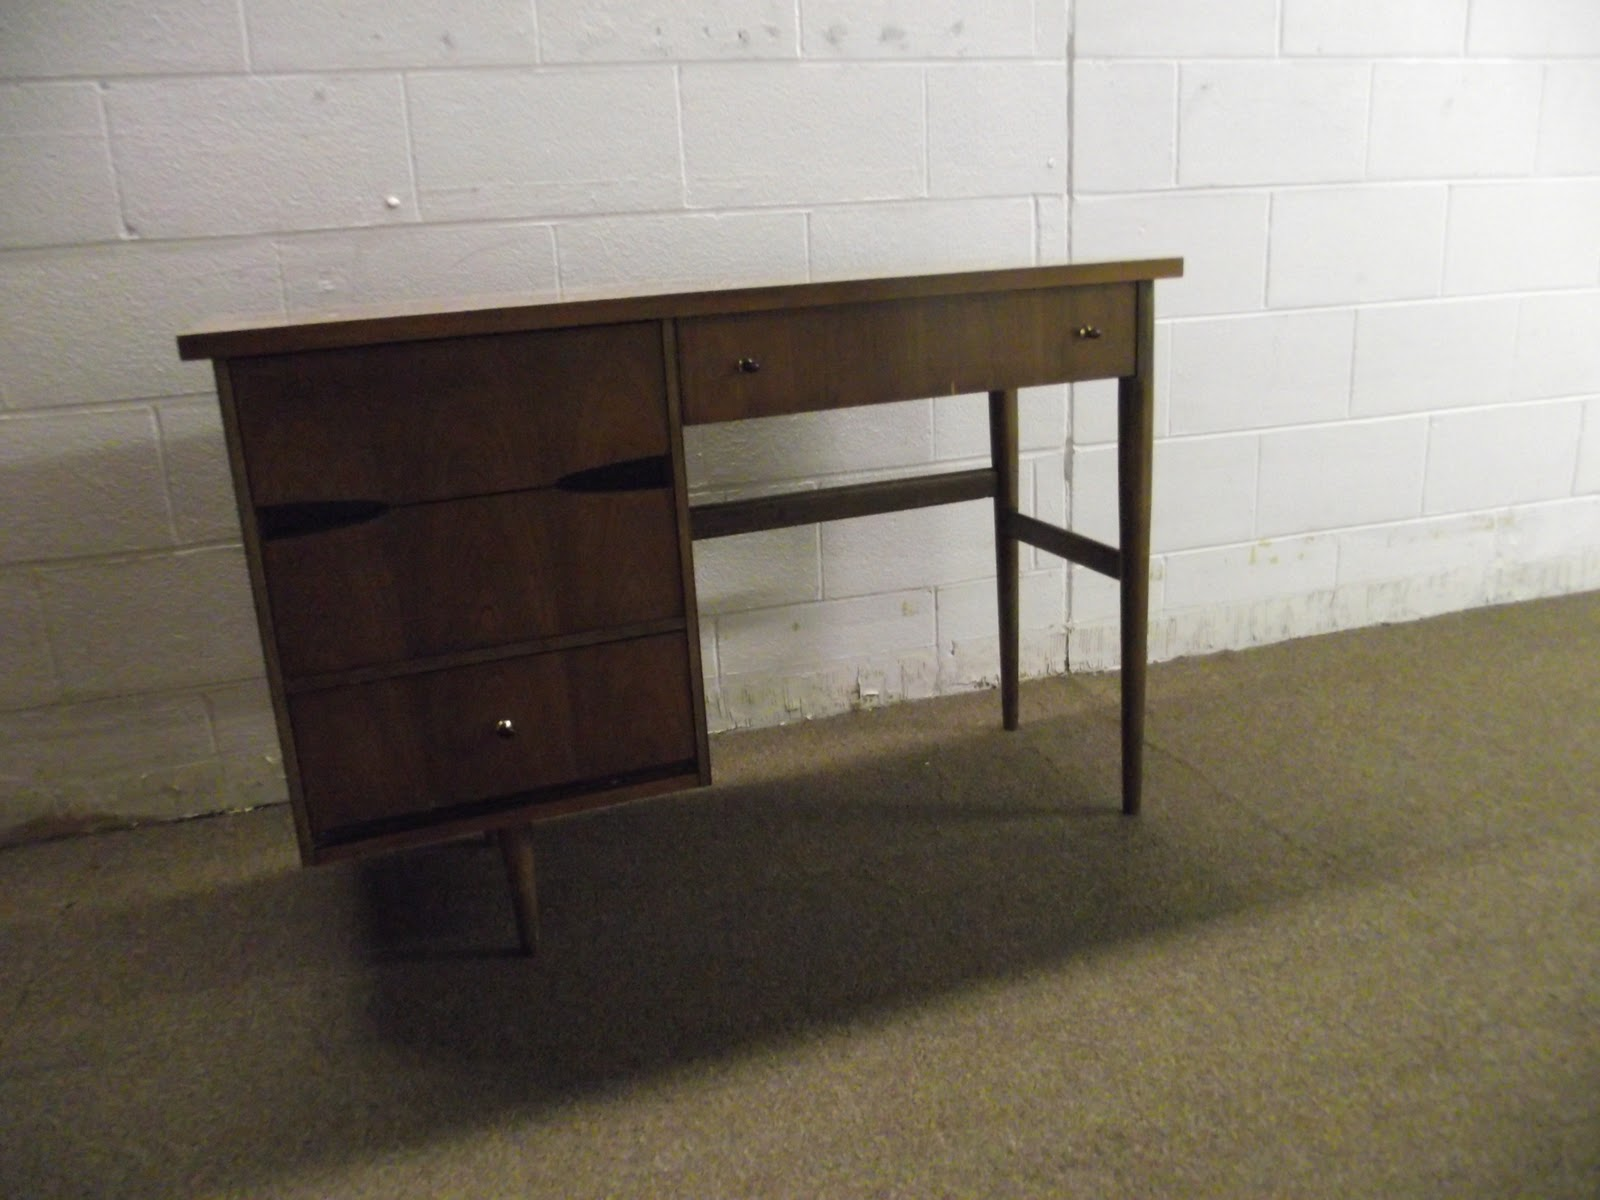 Broyhill Furniture Outlet Sanford Fl Antique Heirloom Furniture In Dallas Tx By Broyhill